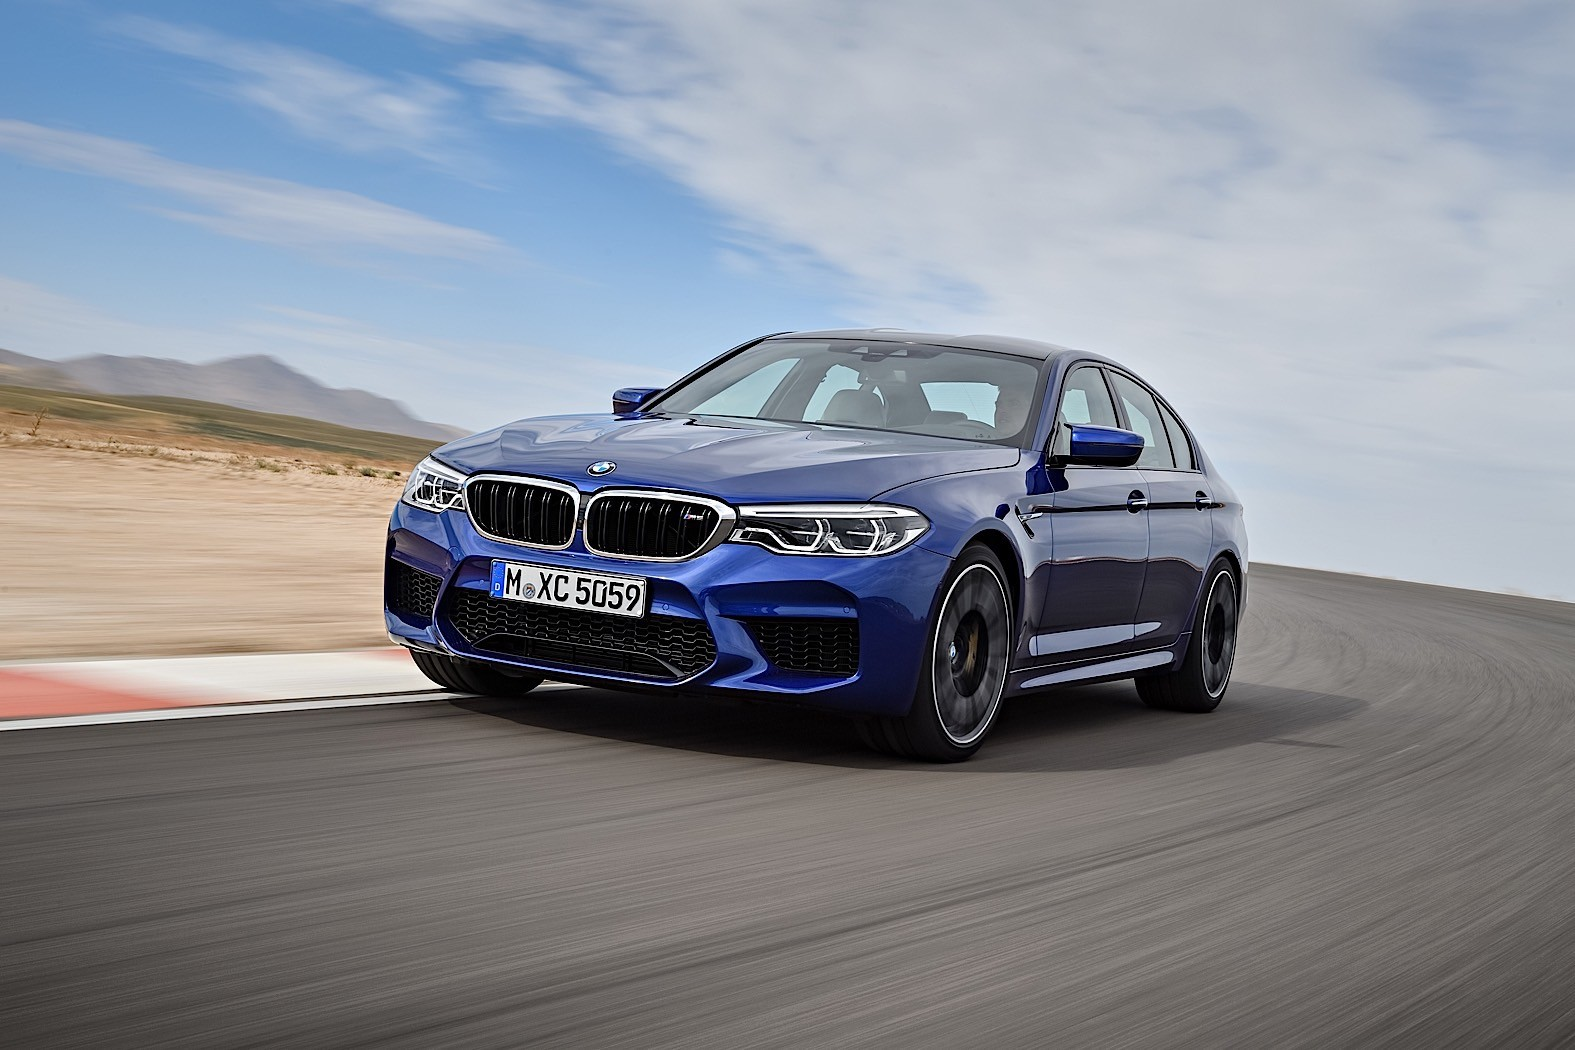 2018 M5 Release Date >> 2018 BMW M5 Unveiled With 600 PS, AWD and RWD - autoevolution